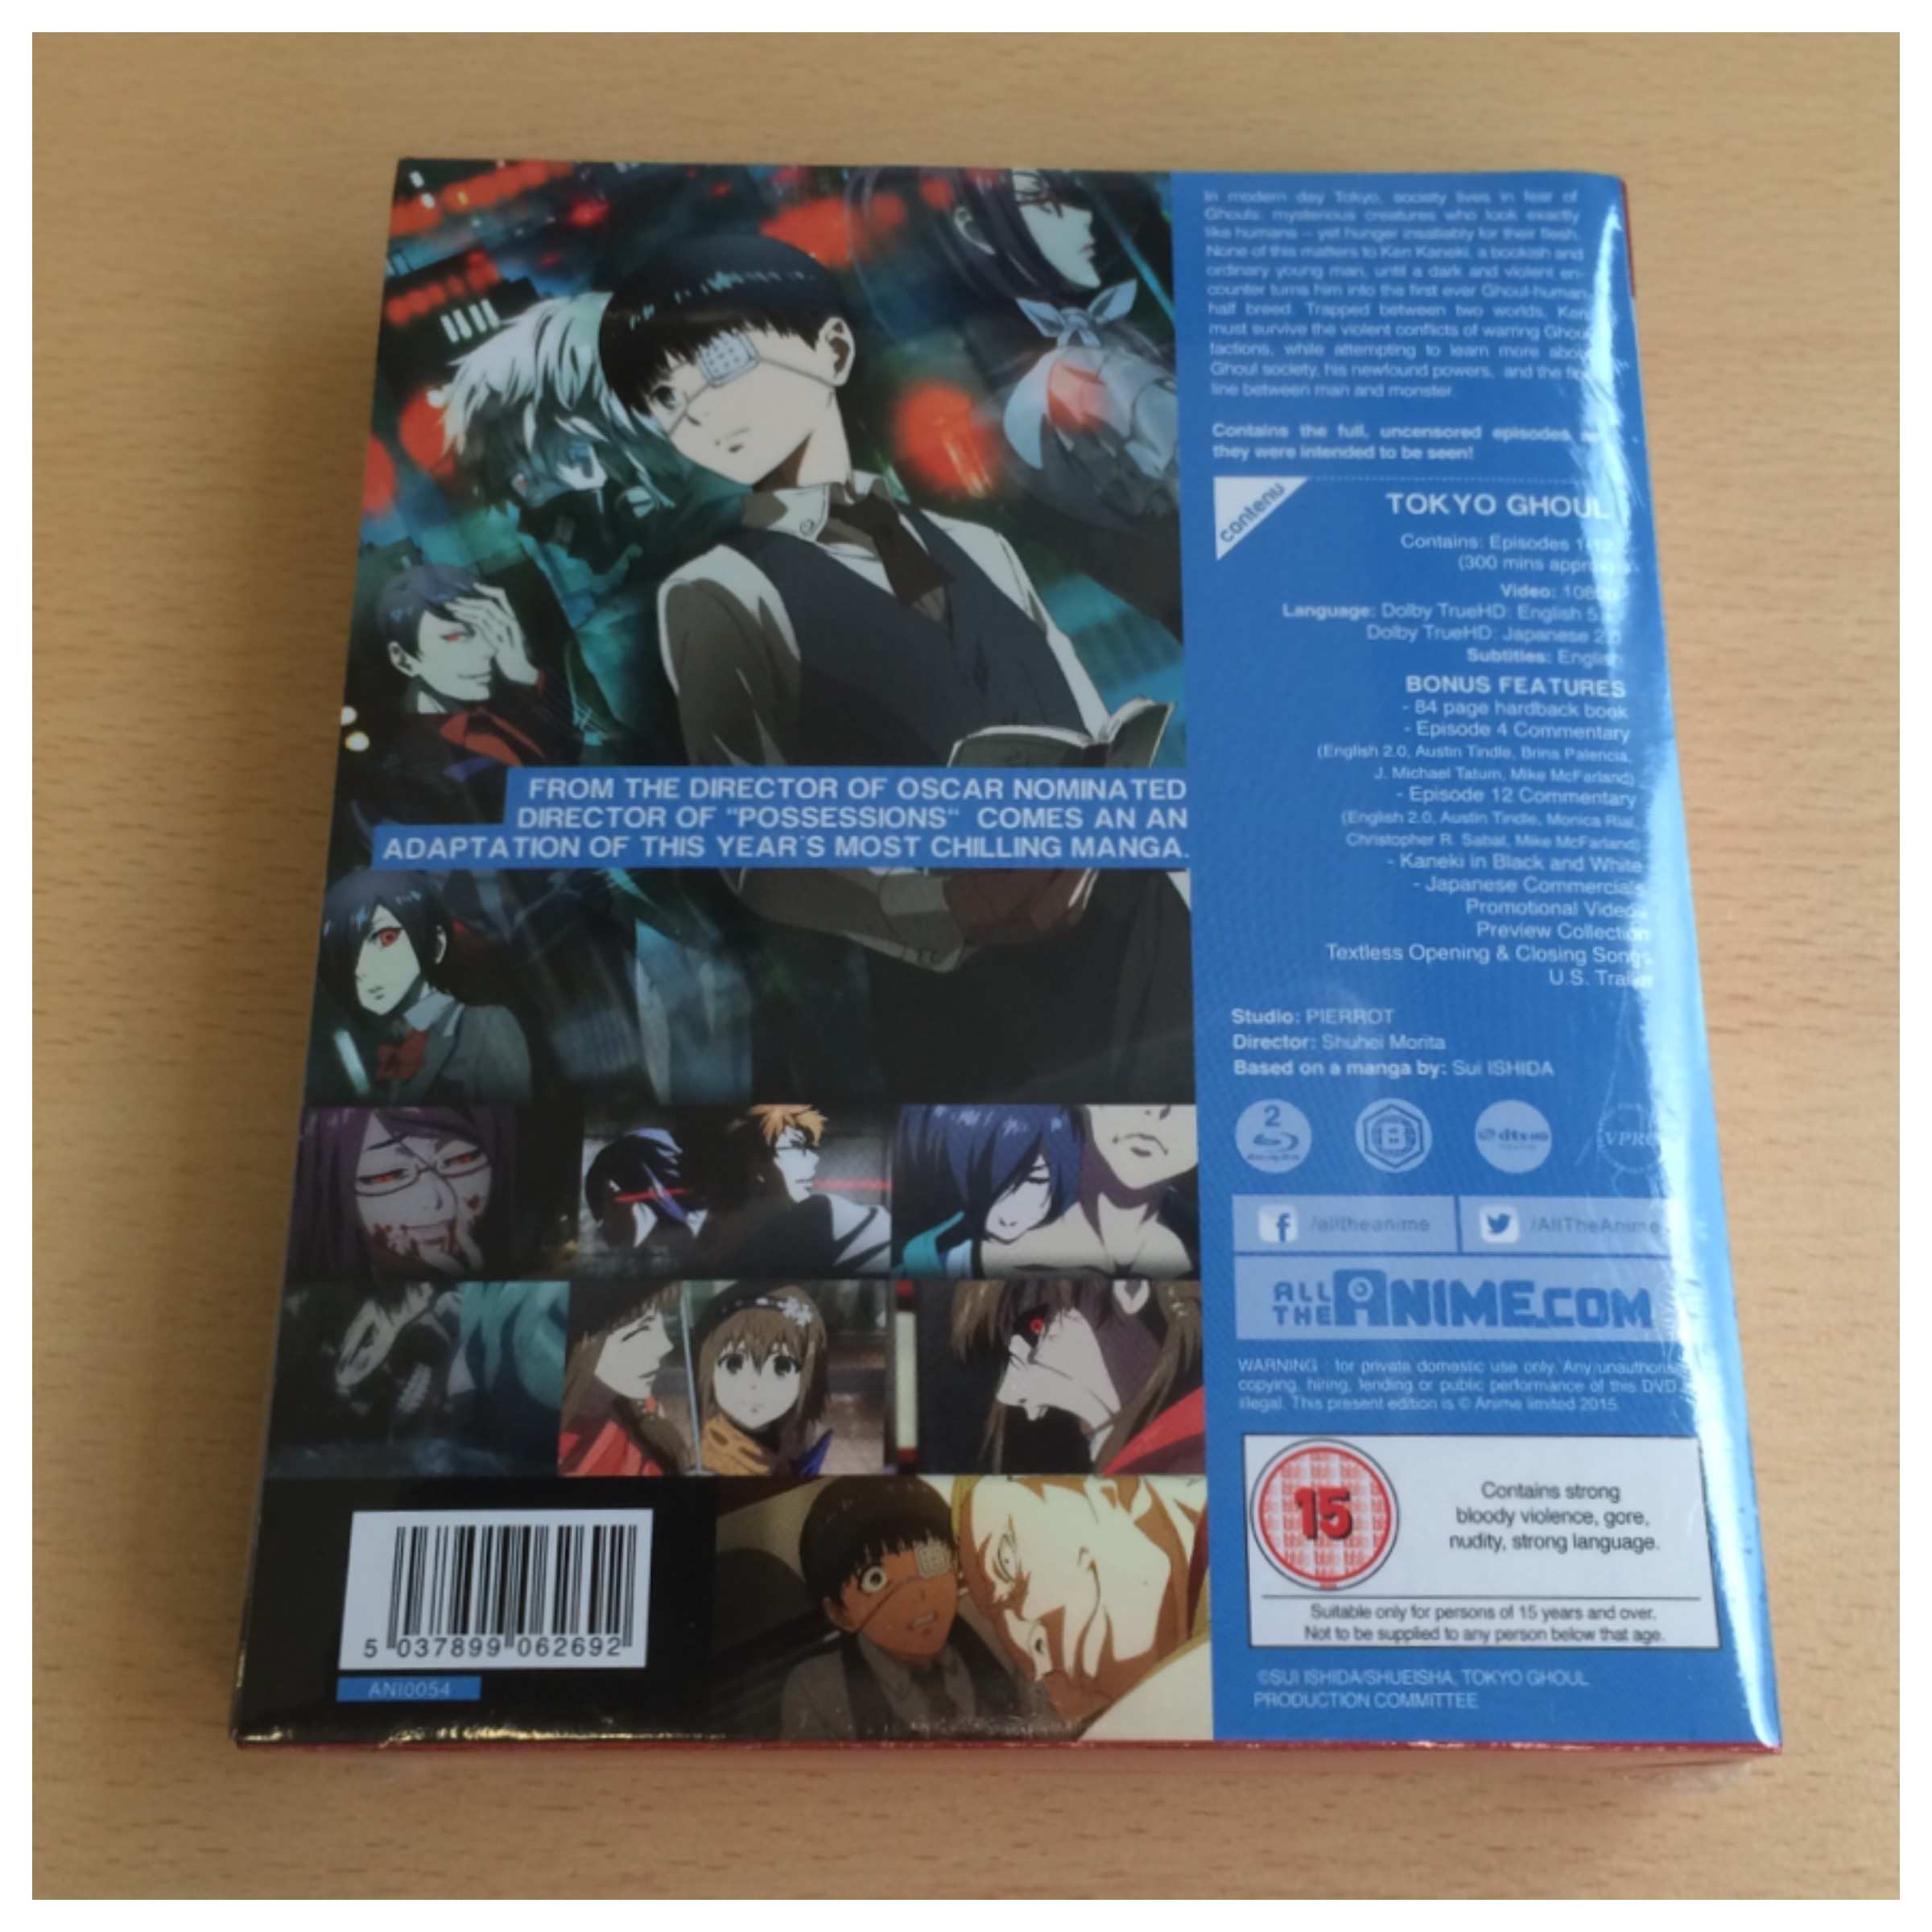 The back of the set. NOTE: The information displayed is on a separate piece of card under the plastic wrap, not on the actual box itself.